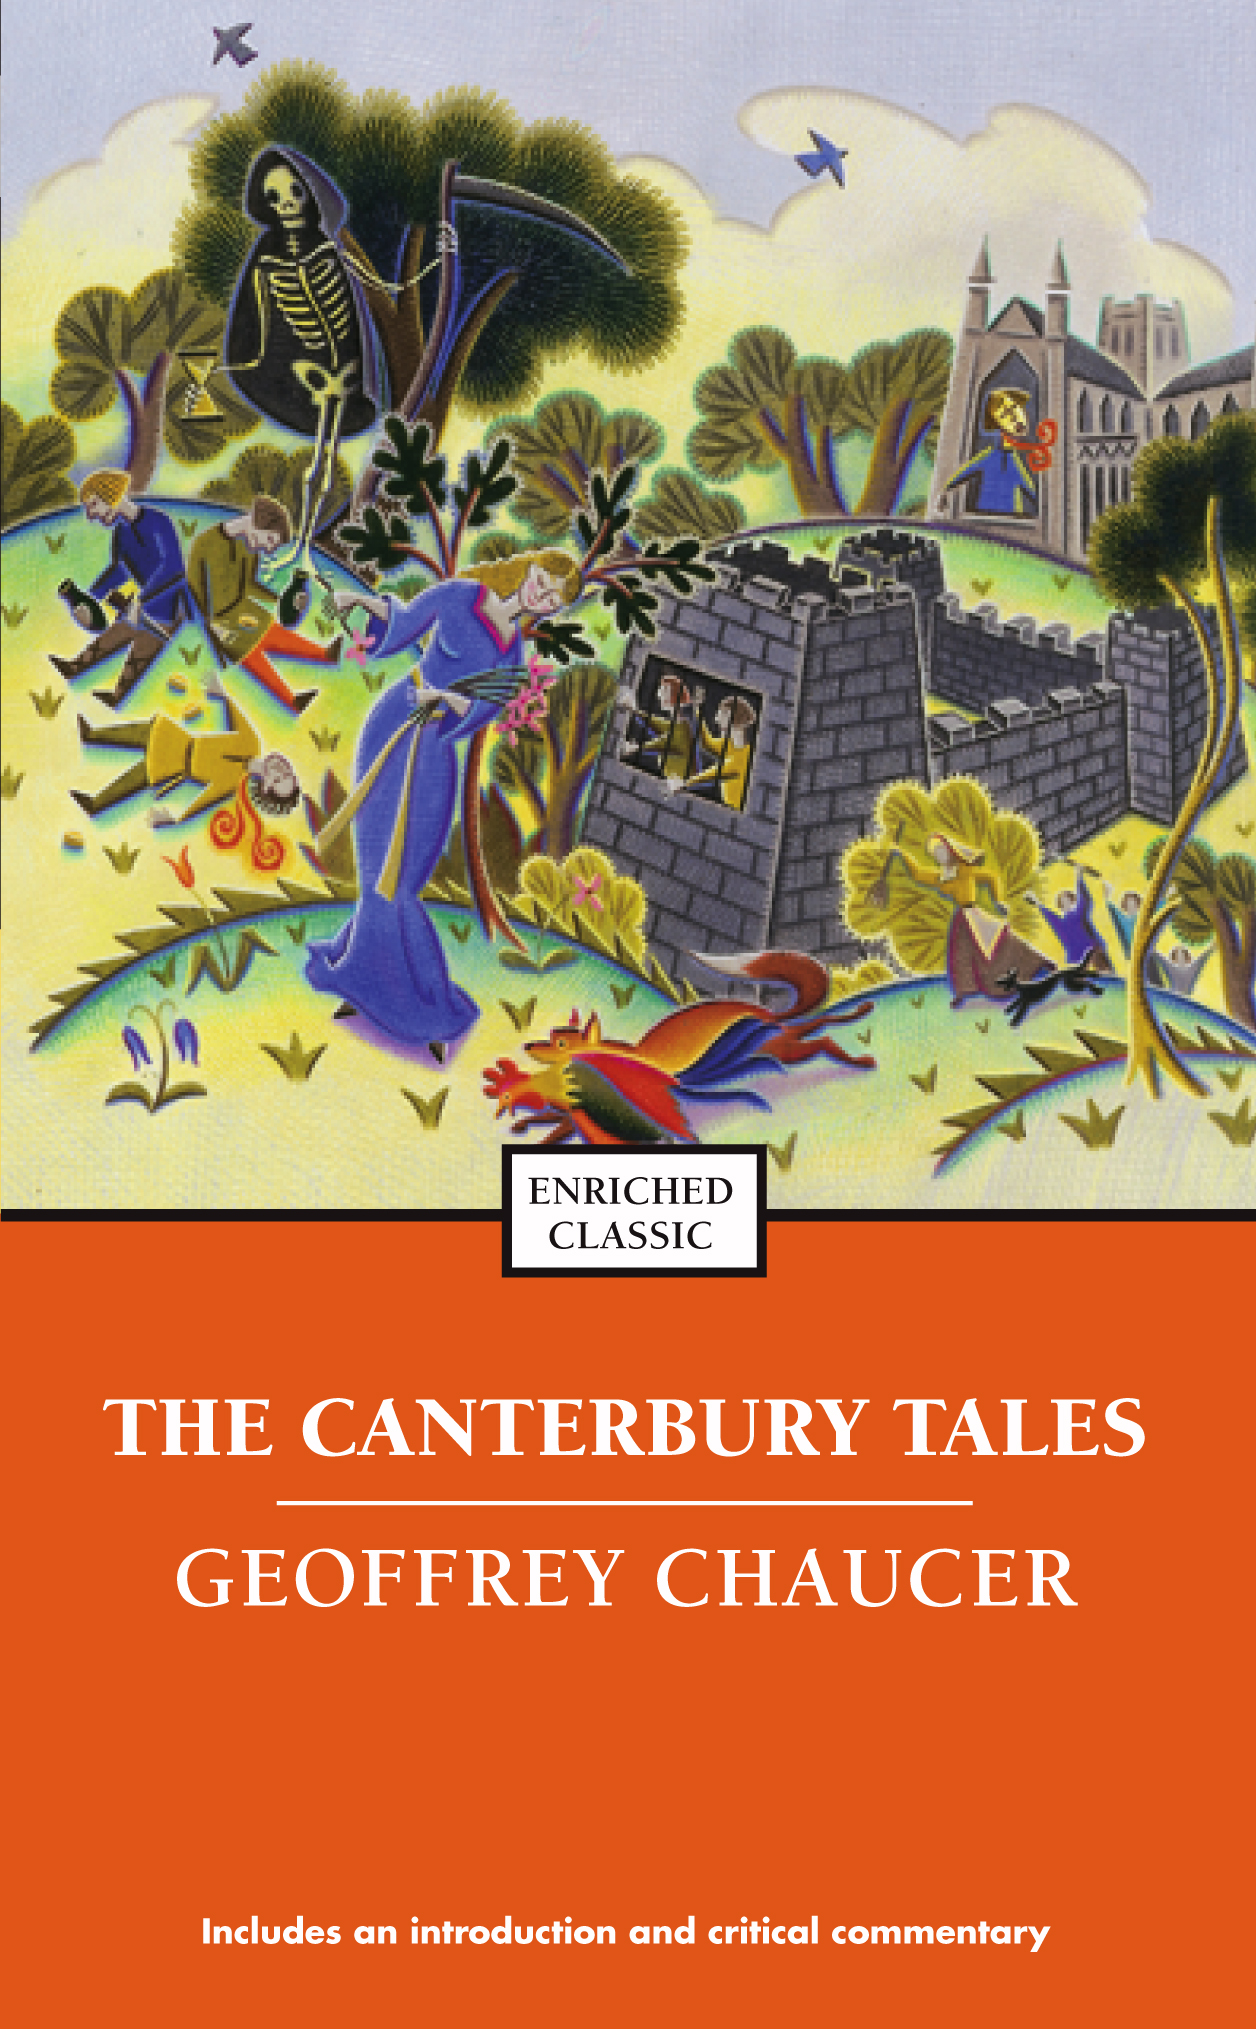 who has written typically the canterbury tales